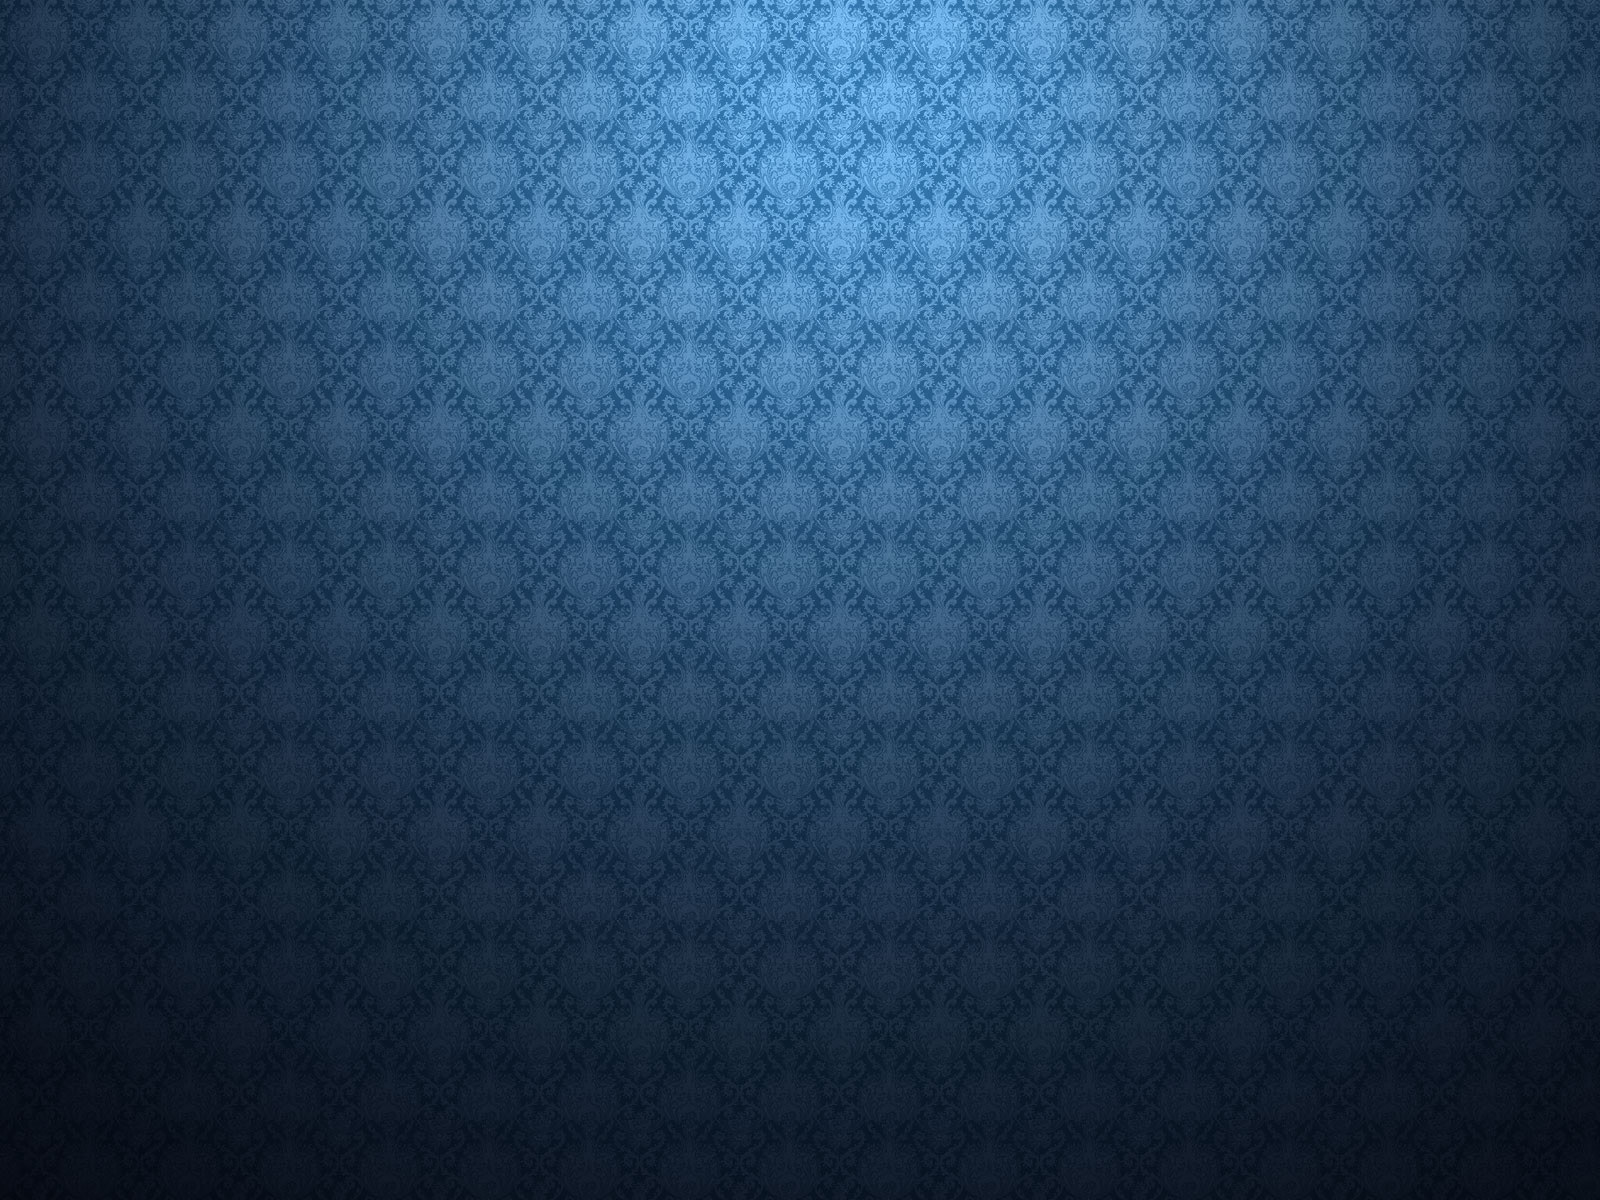 hd blue texture wallpapers hd wallpapers hd blue texture wallpapers hd 1600x1200